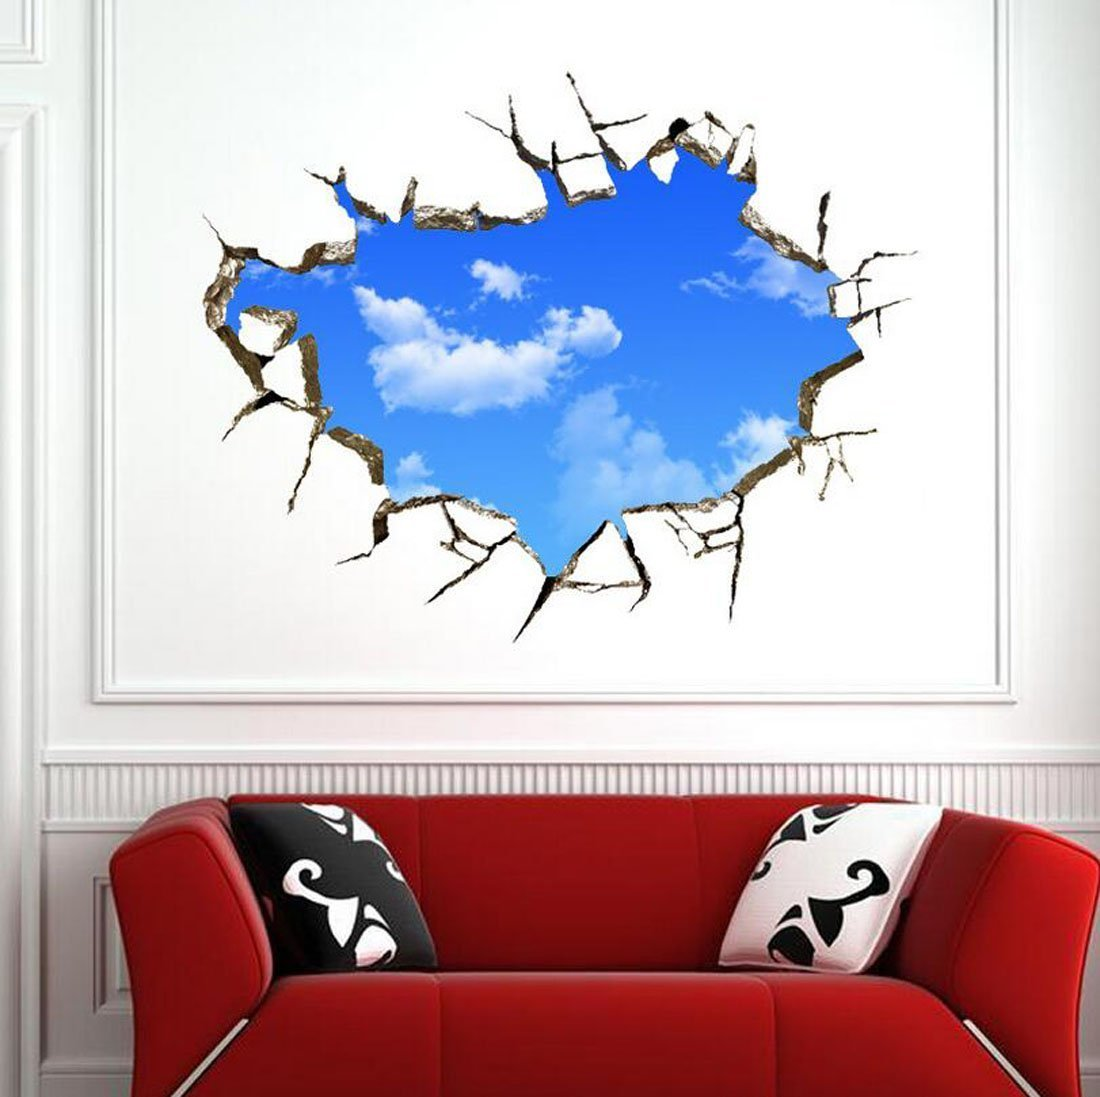 amazon com 3d wall stickers blue sky for ceiling real feeling amazon com 3d wall stickers blue sky for ceiling real feeling suit for bedroom living room nursery kids room wall decoration home kitchen